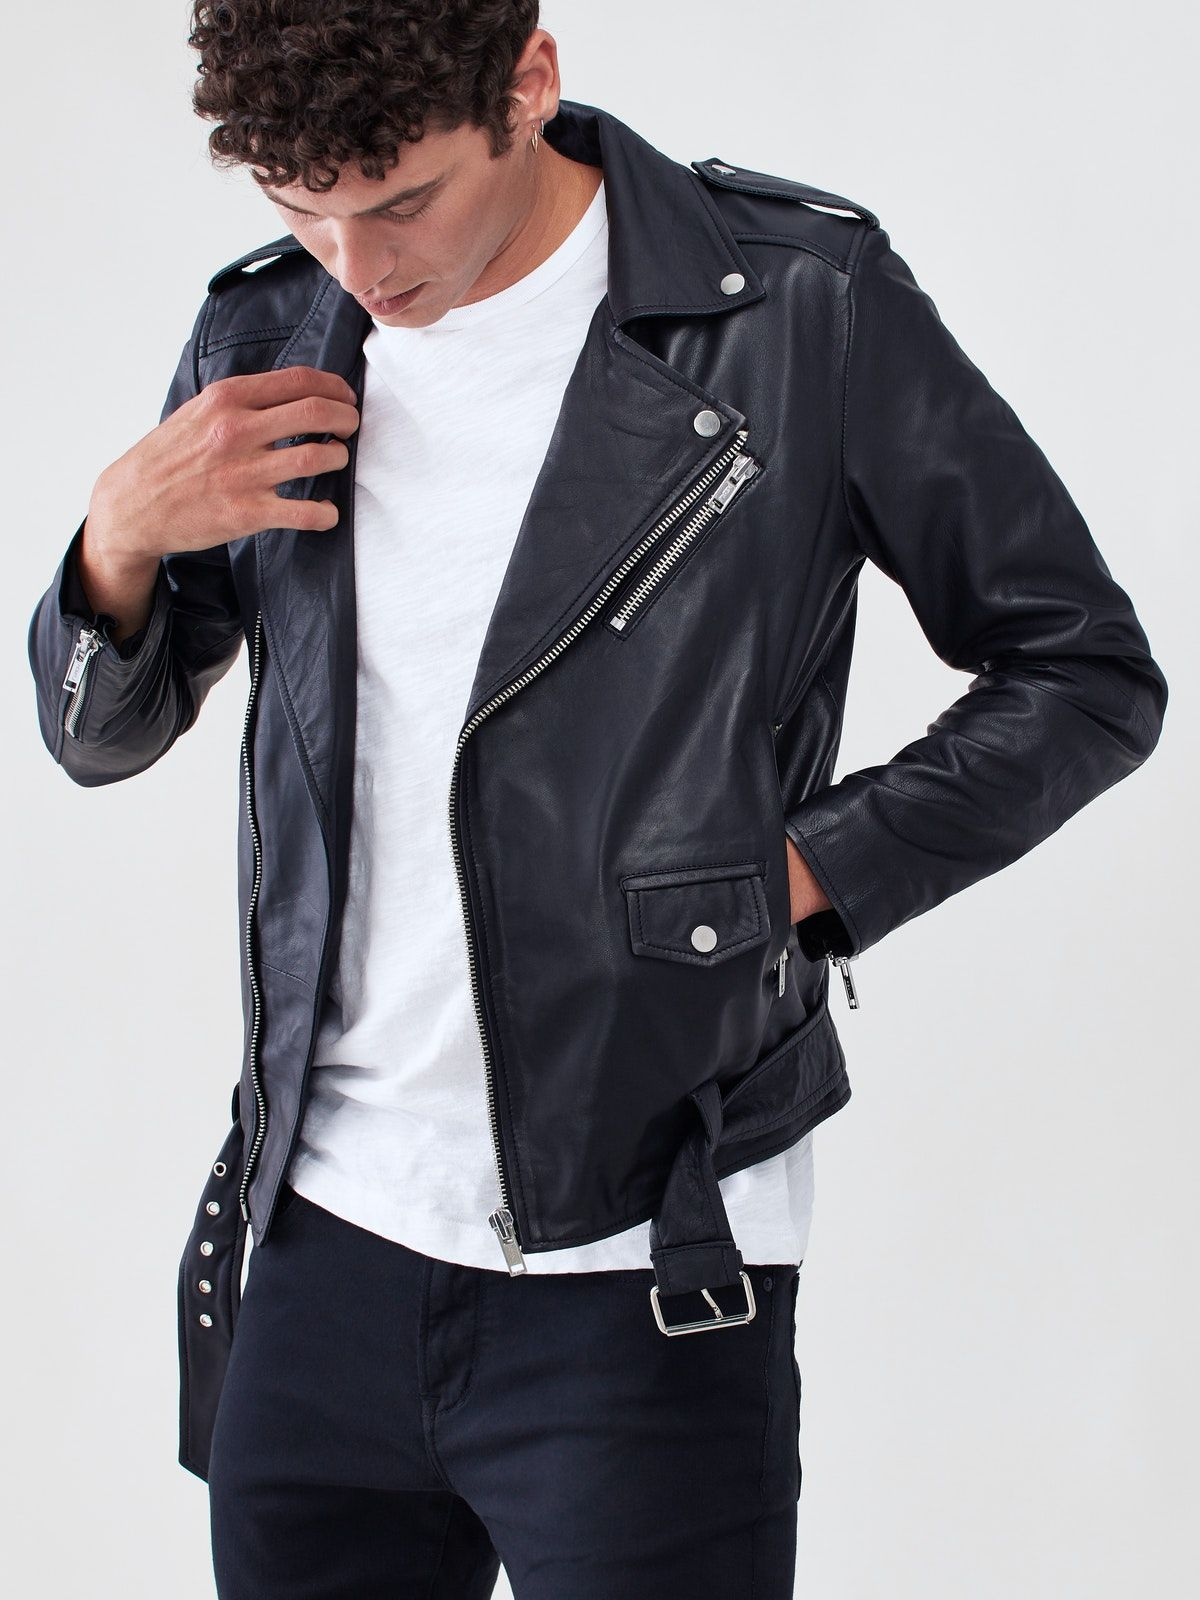 The Biker Jacket Is Deadwood S Signature Design With Everything You D Look For In A Leather Jacket Leather Jacket Outfit Men Biker Jacket Men Leather Jeans Men [ 1600 x 1200 Pixel ]